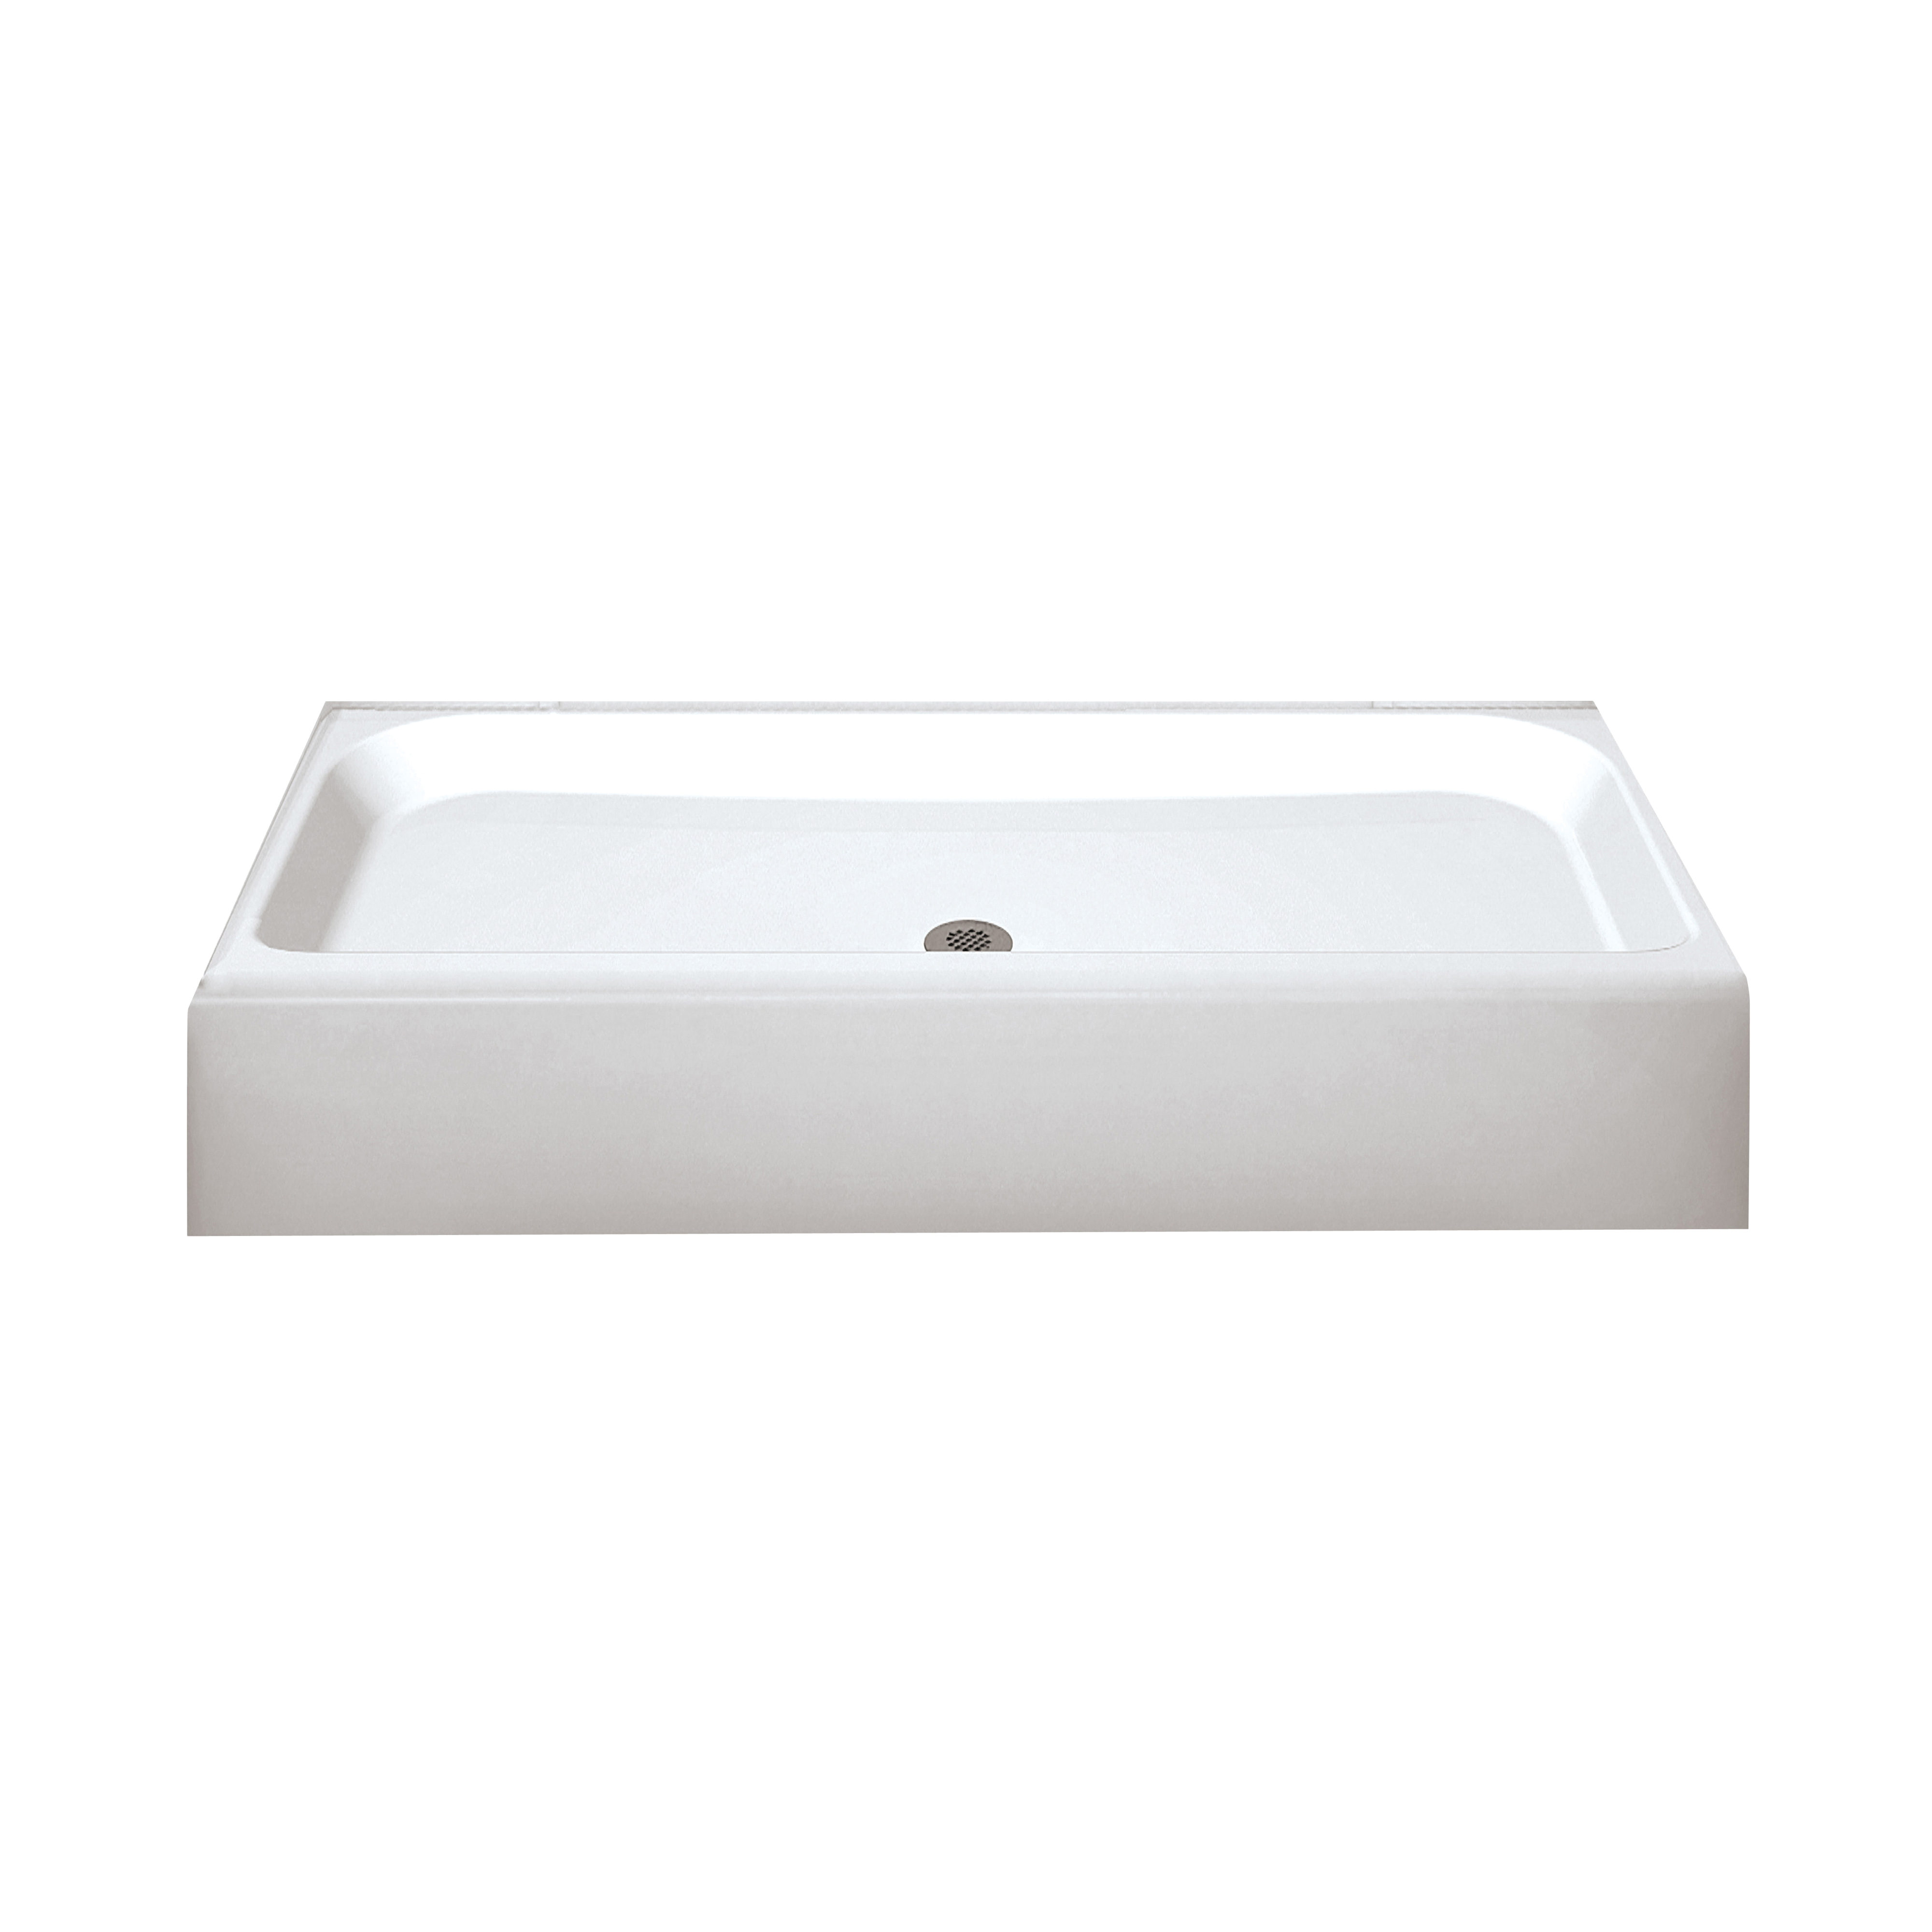 Picture of MAAX Finesse 105623-000-002 Shower Base, 60 in L, 32 in W, 7 in H, Fiberglass, White, Alcove Installation